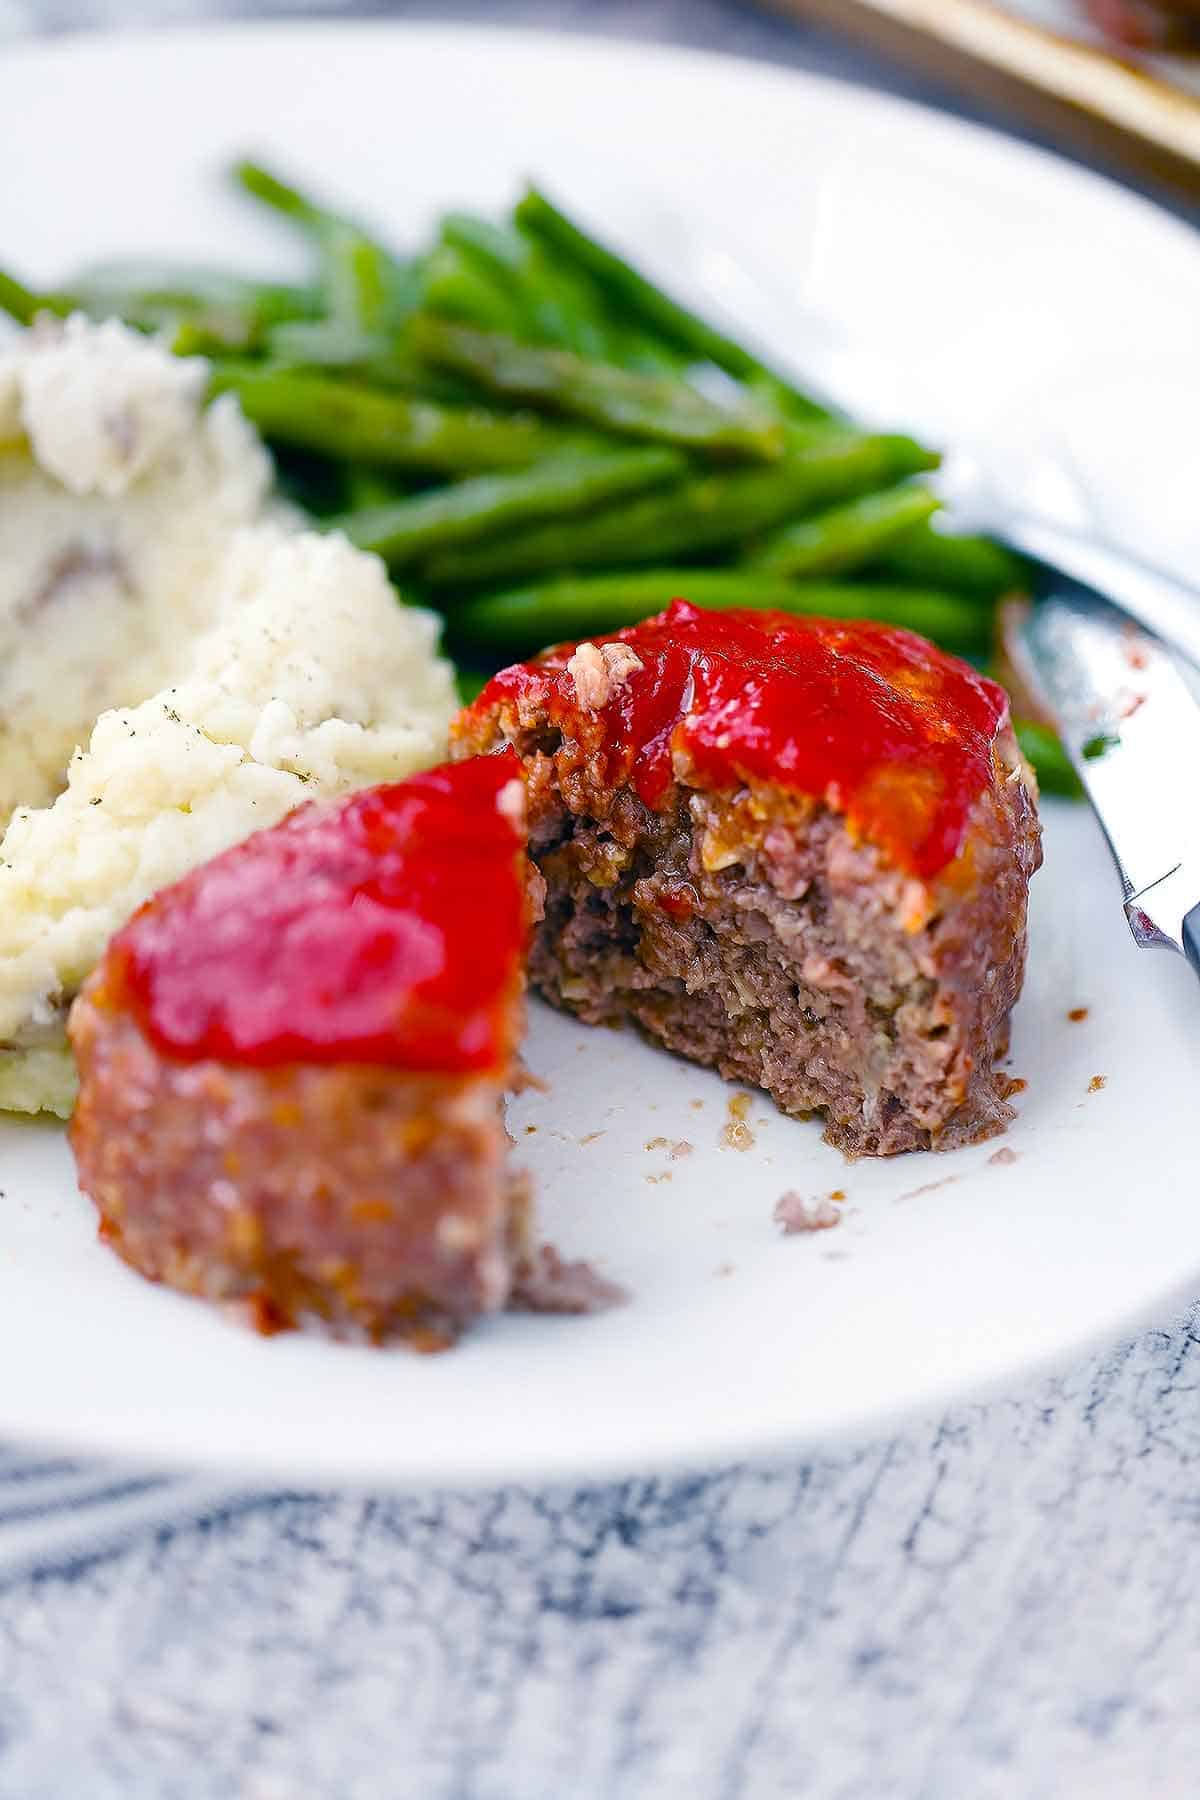 White plate holding meatloaf, mashed potatoes, and green beans.